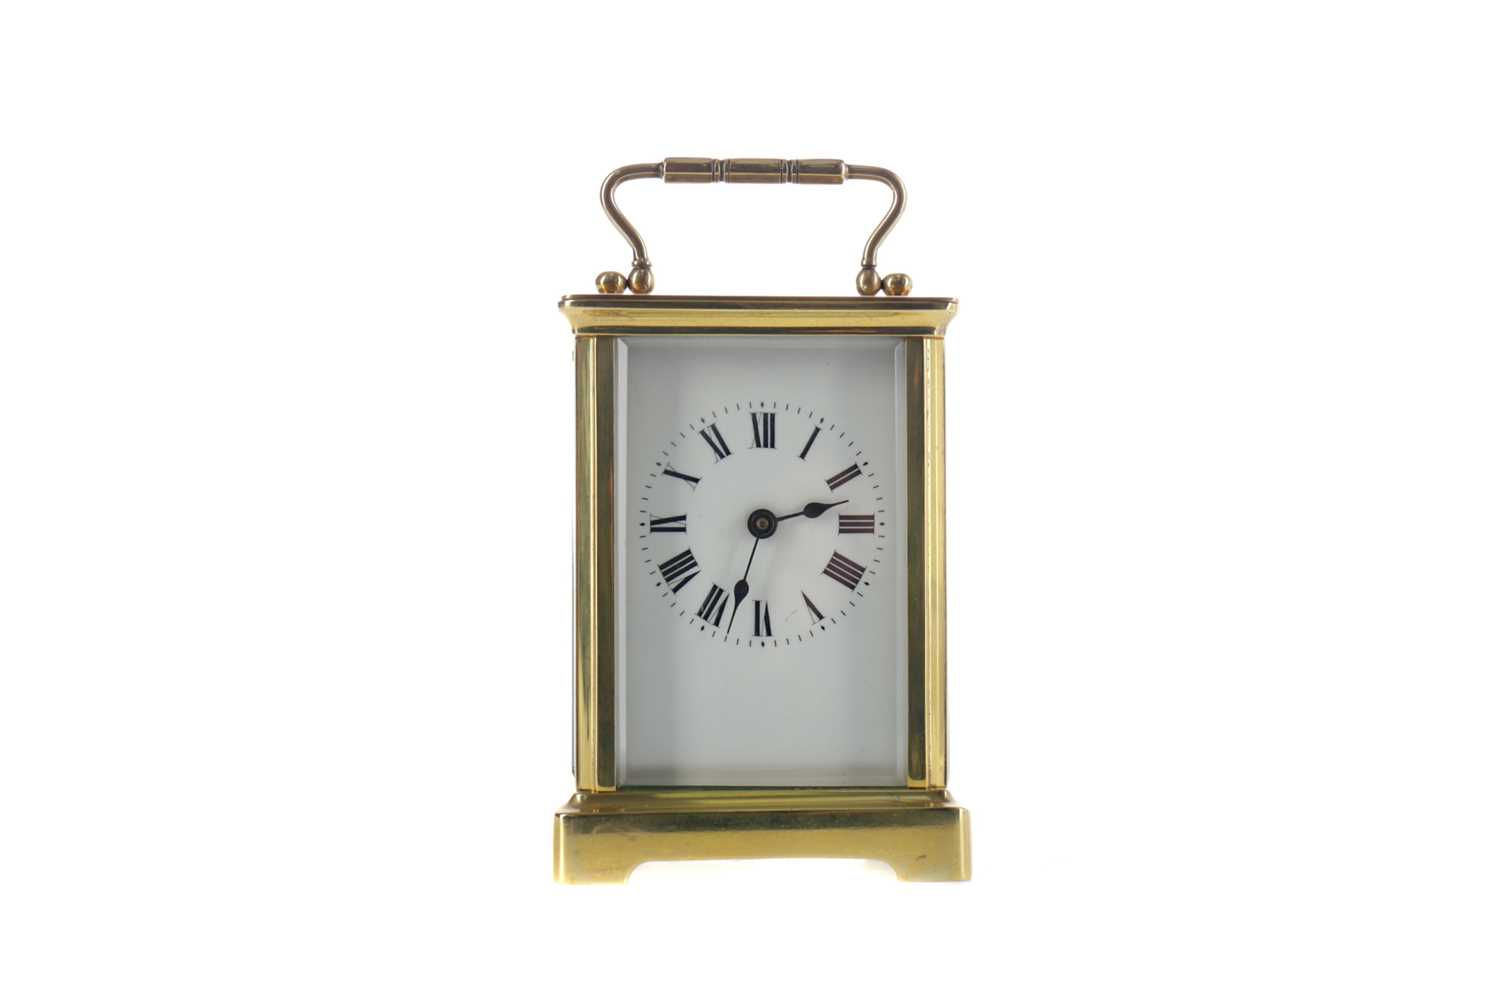 Lot 1737 - AN EARLY 20TH CENTURY CARRIAGE CLOCK